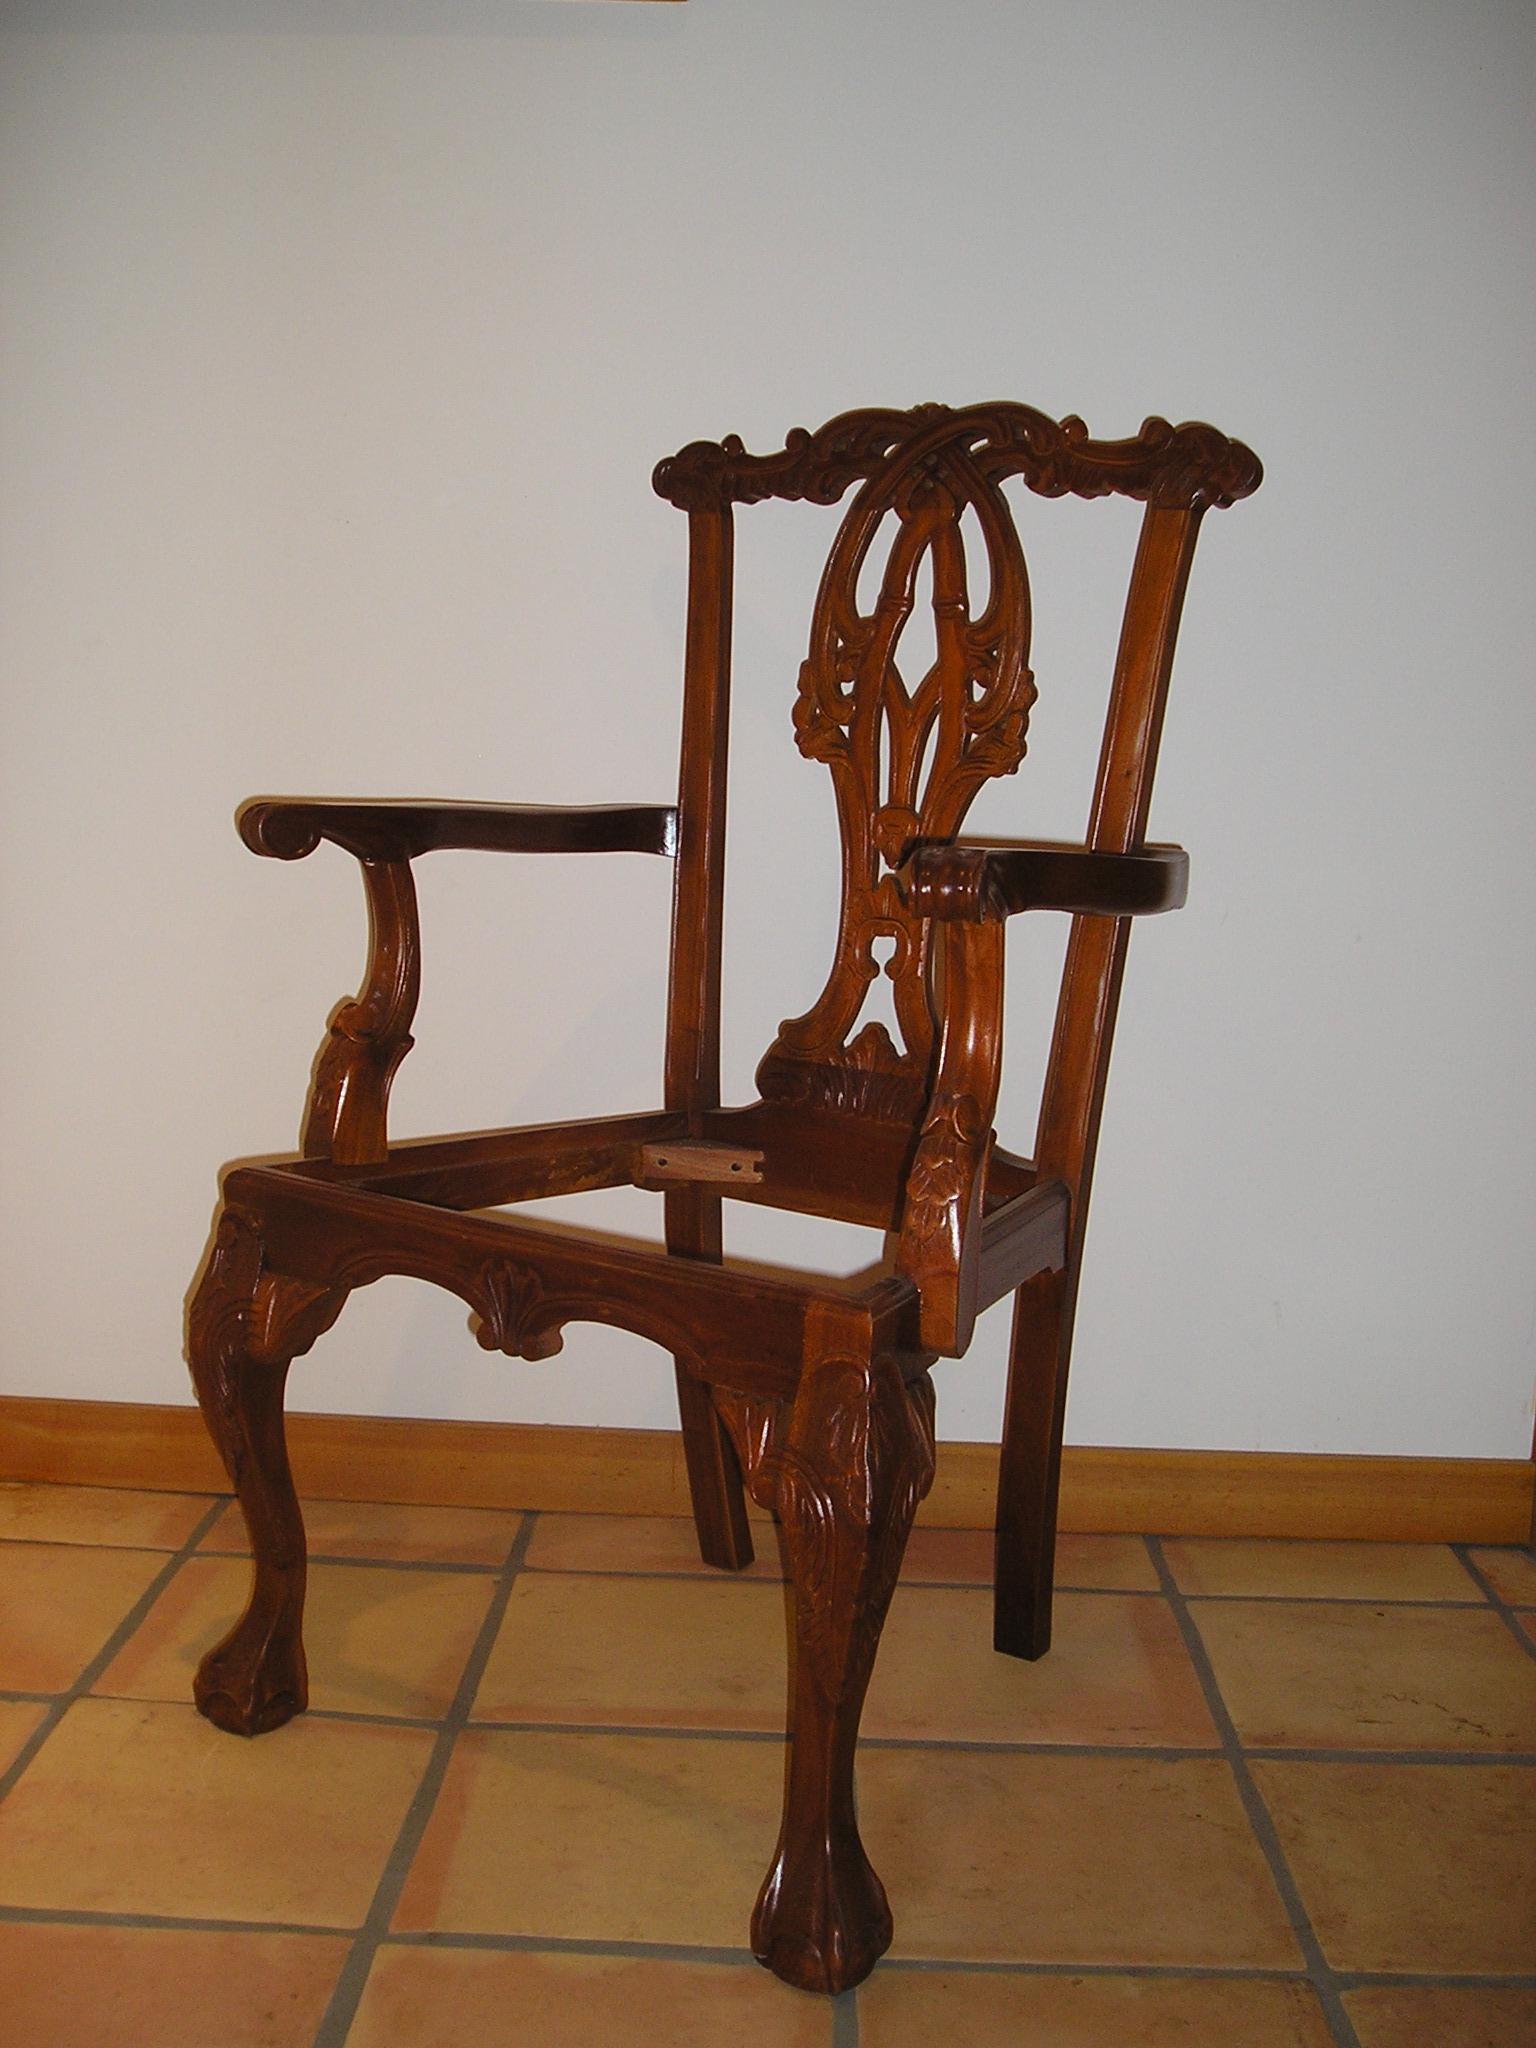 Chippendale Chairs The Resolute Desk